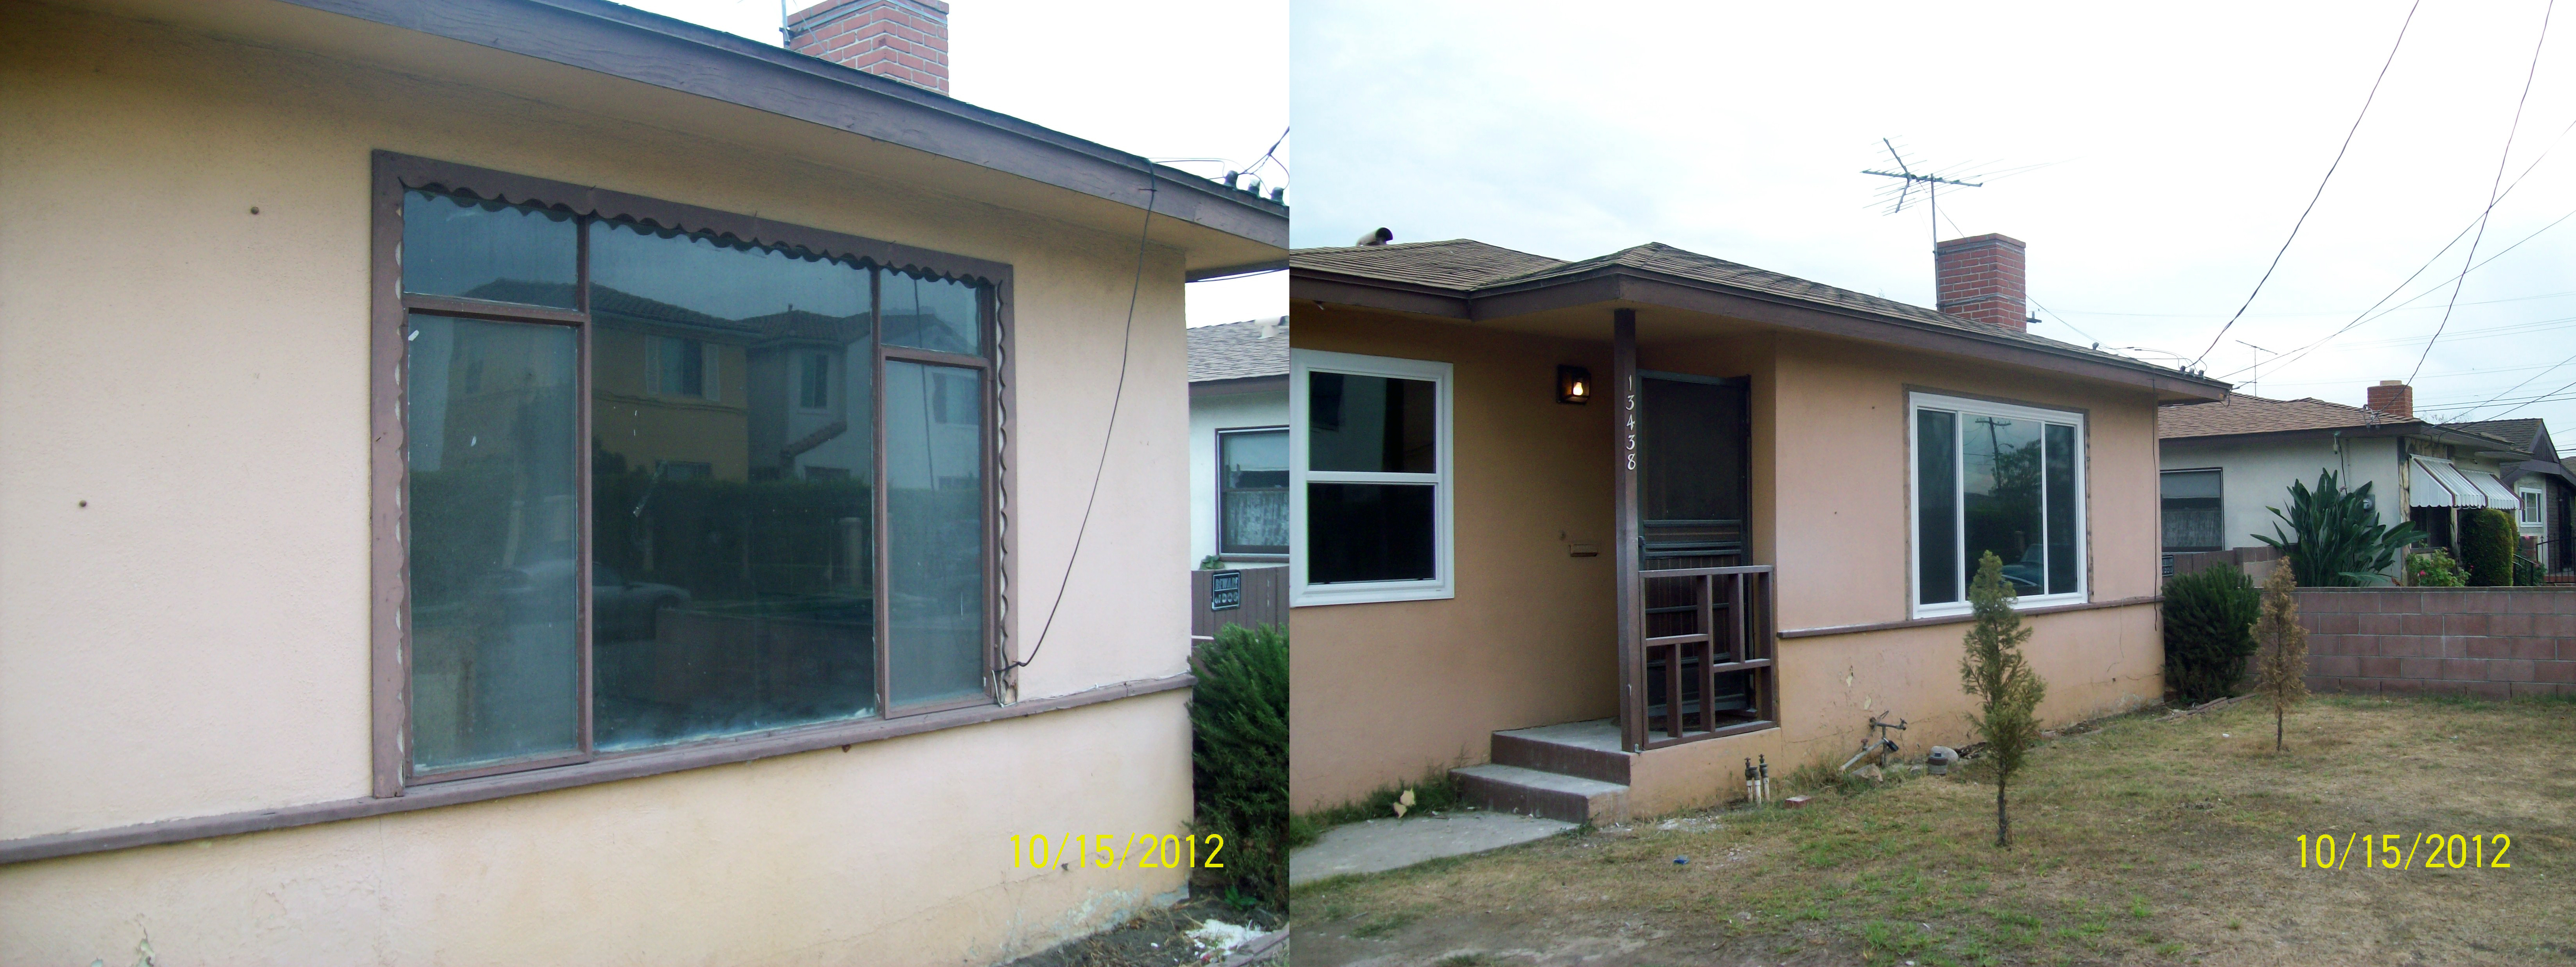 before after 11.jpg